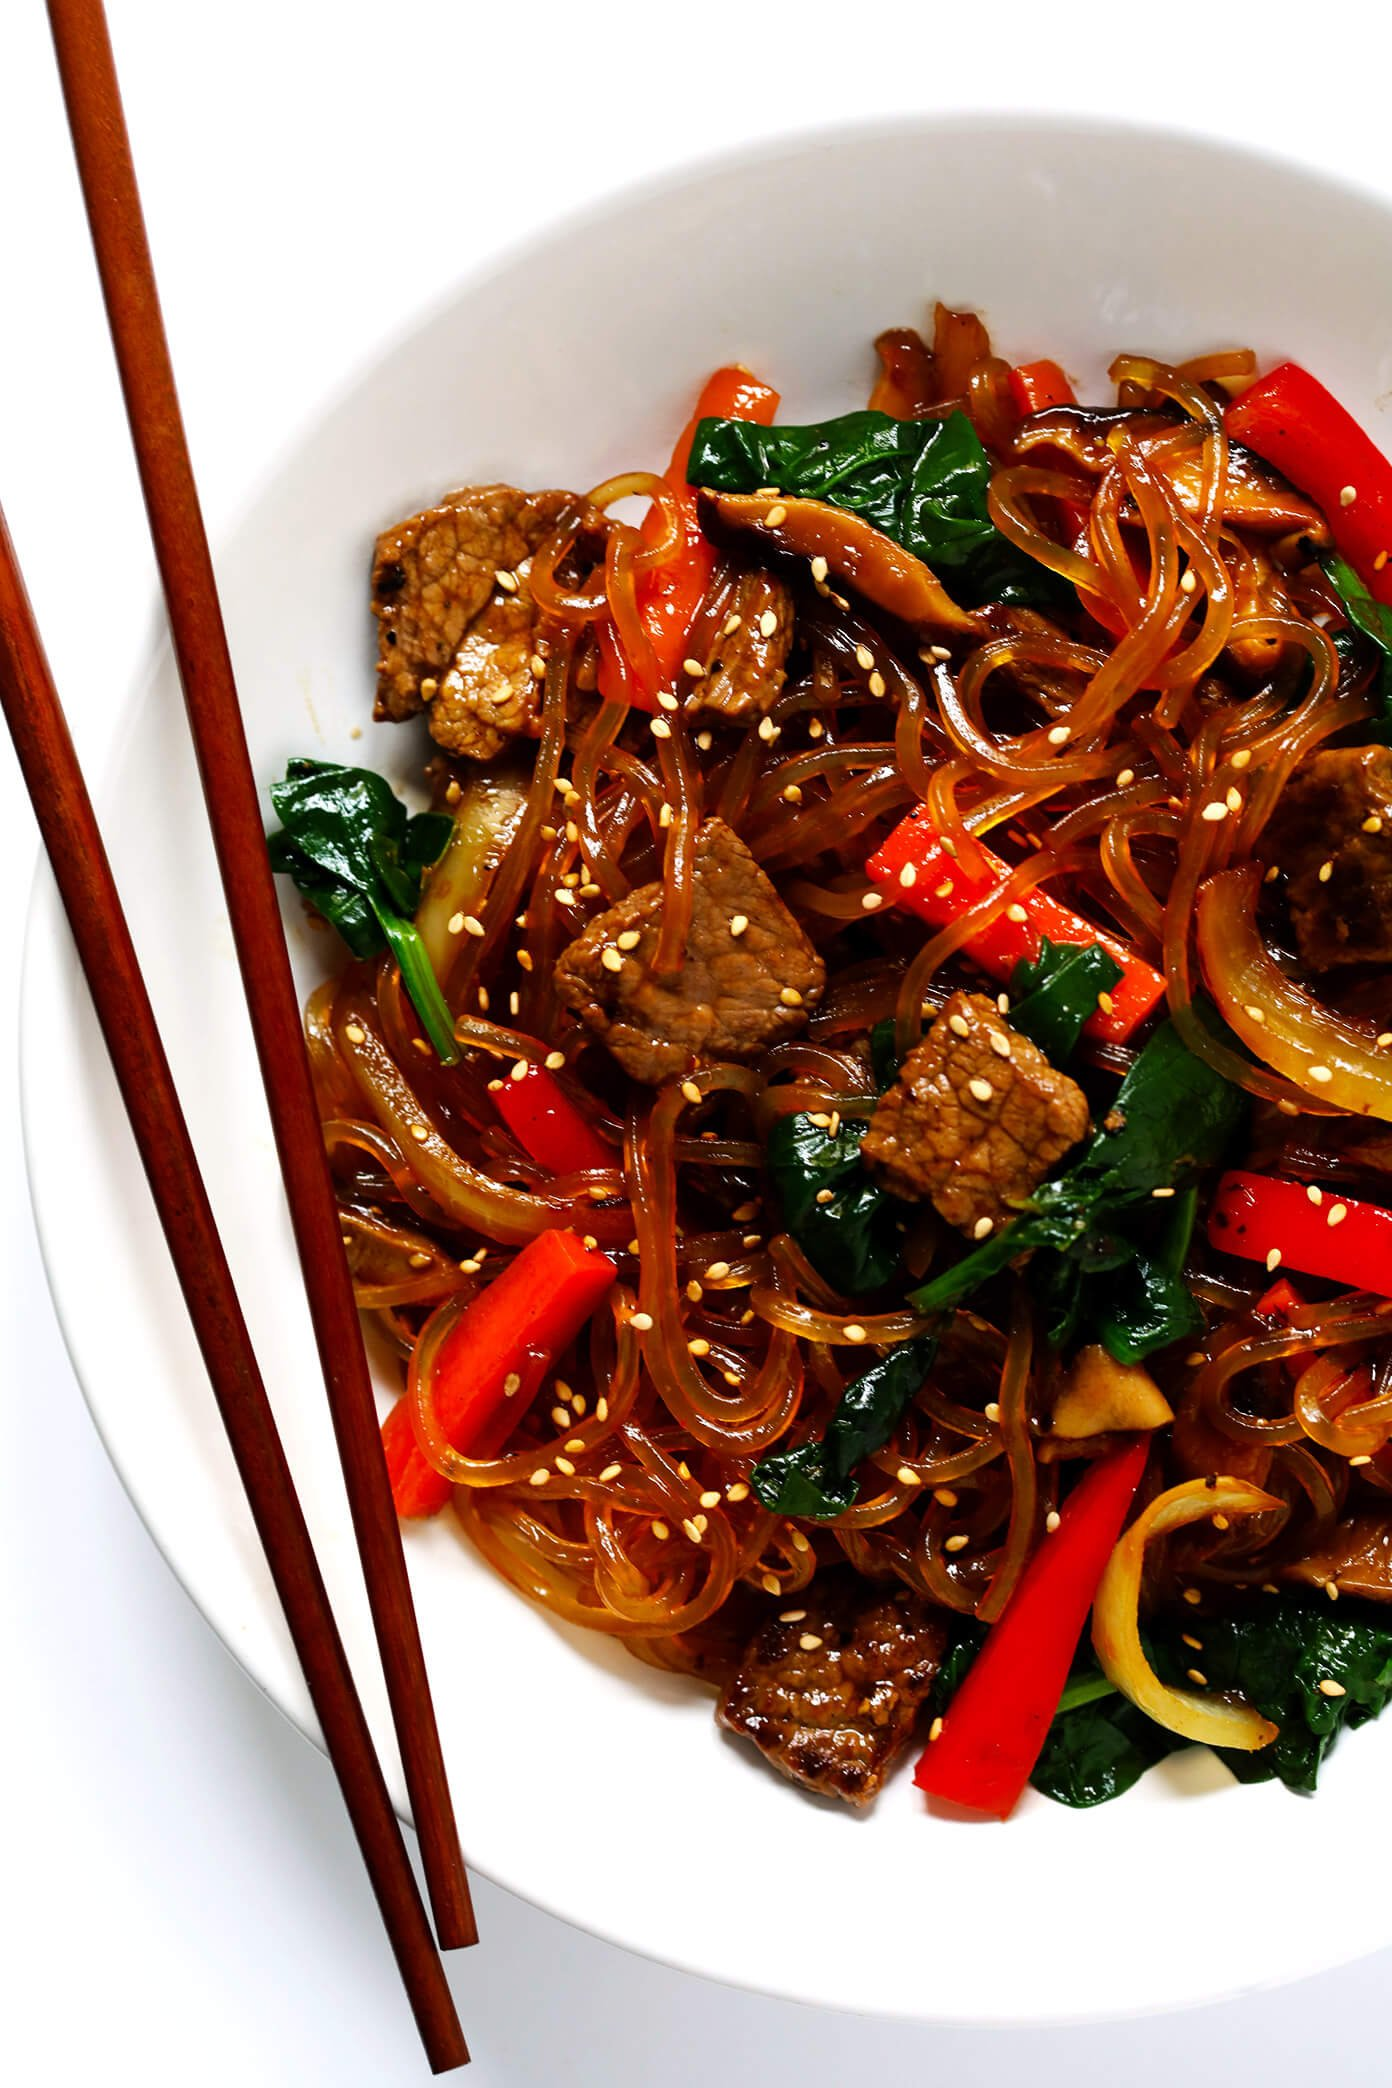 Japchae Korean Noodle Stir Fry with Chopsticks